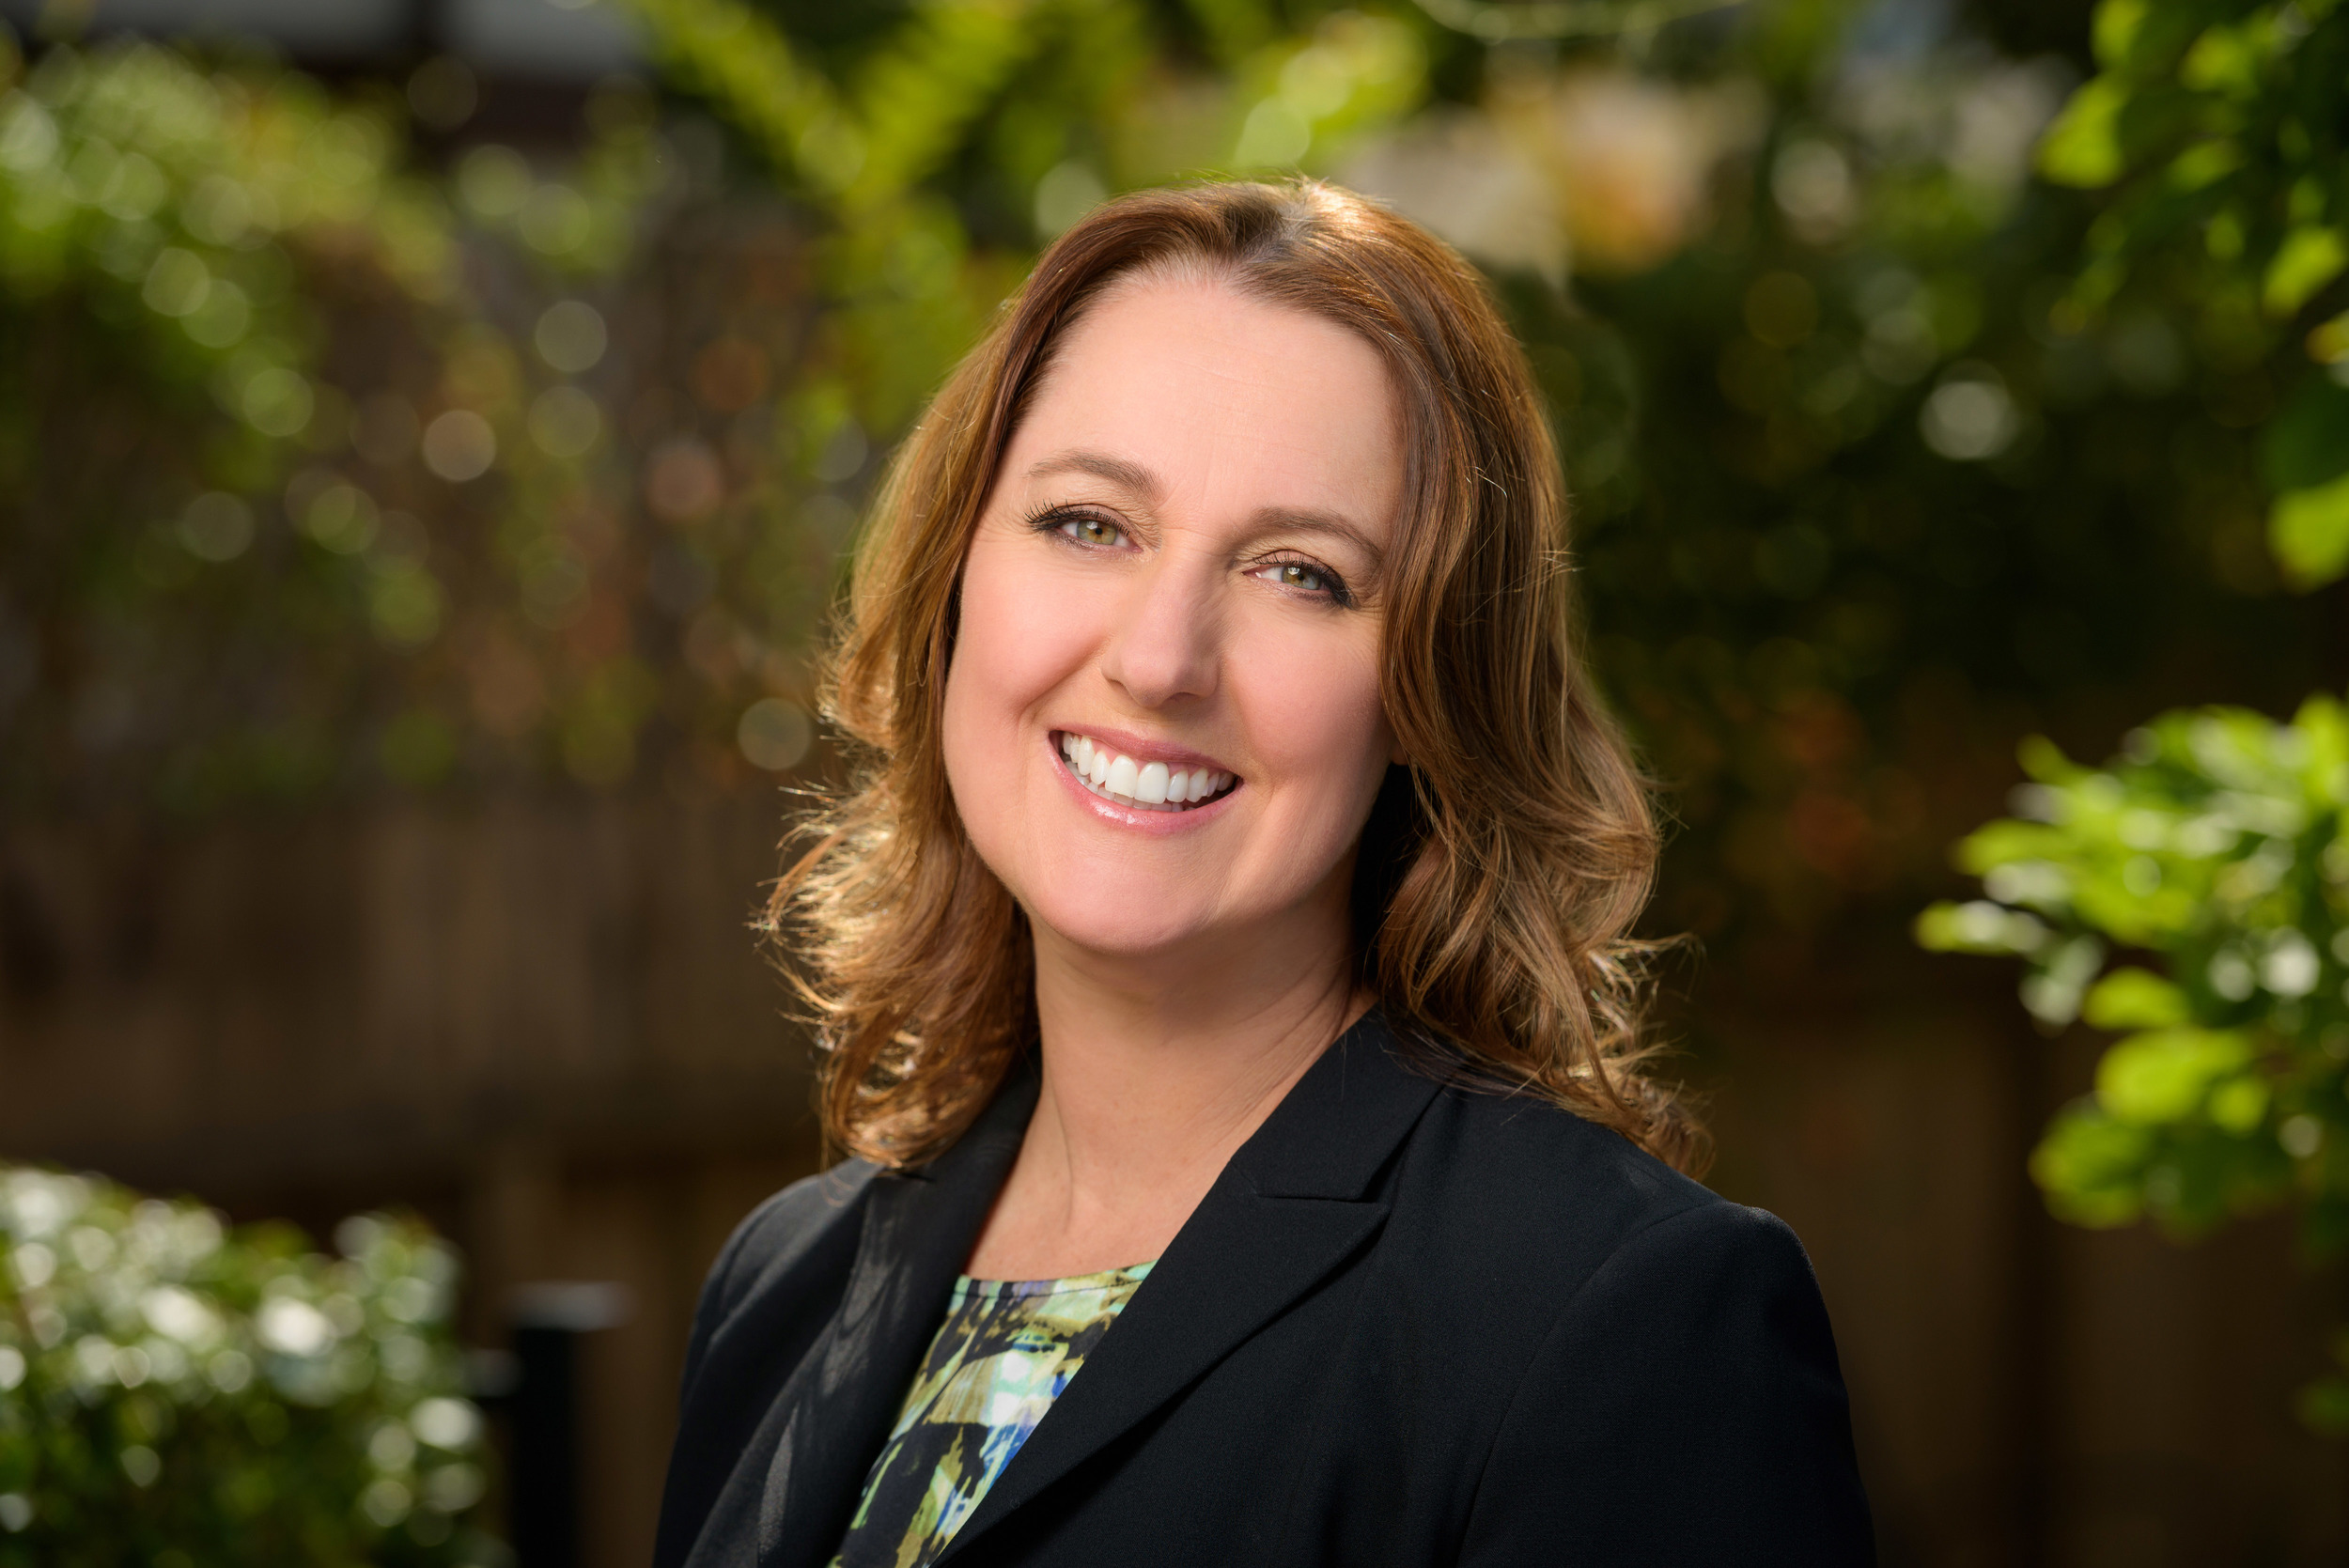 Redwood City business portraits by Bay Area Commercial Headshot Photographer Chris Schmauch